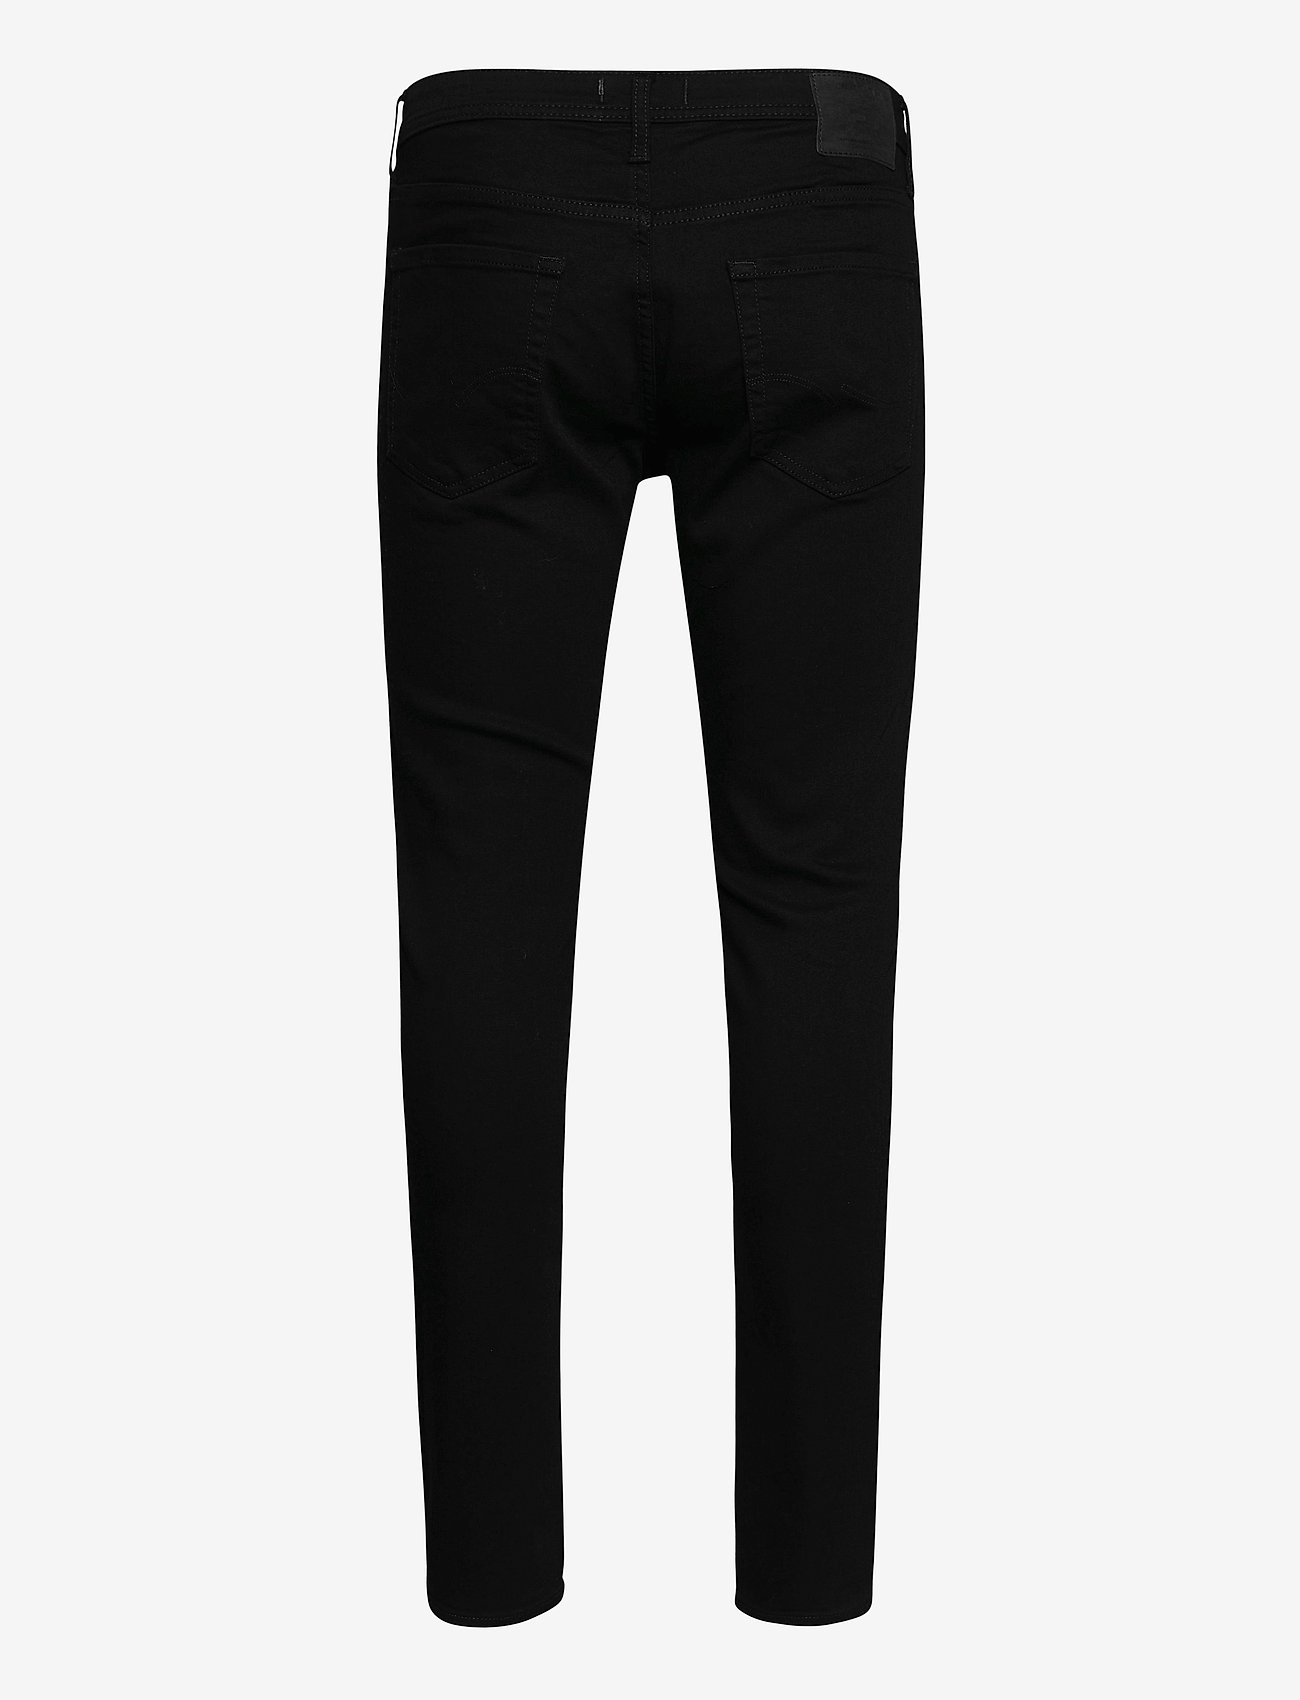 Jack & Jones - JJIGLENN JJORIGINAL AM 816 NOOS - slim jeans - black denim - 1